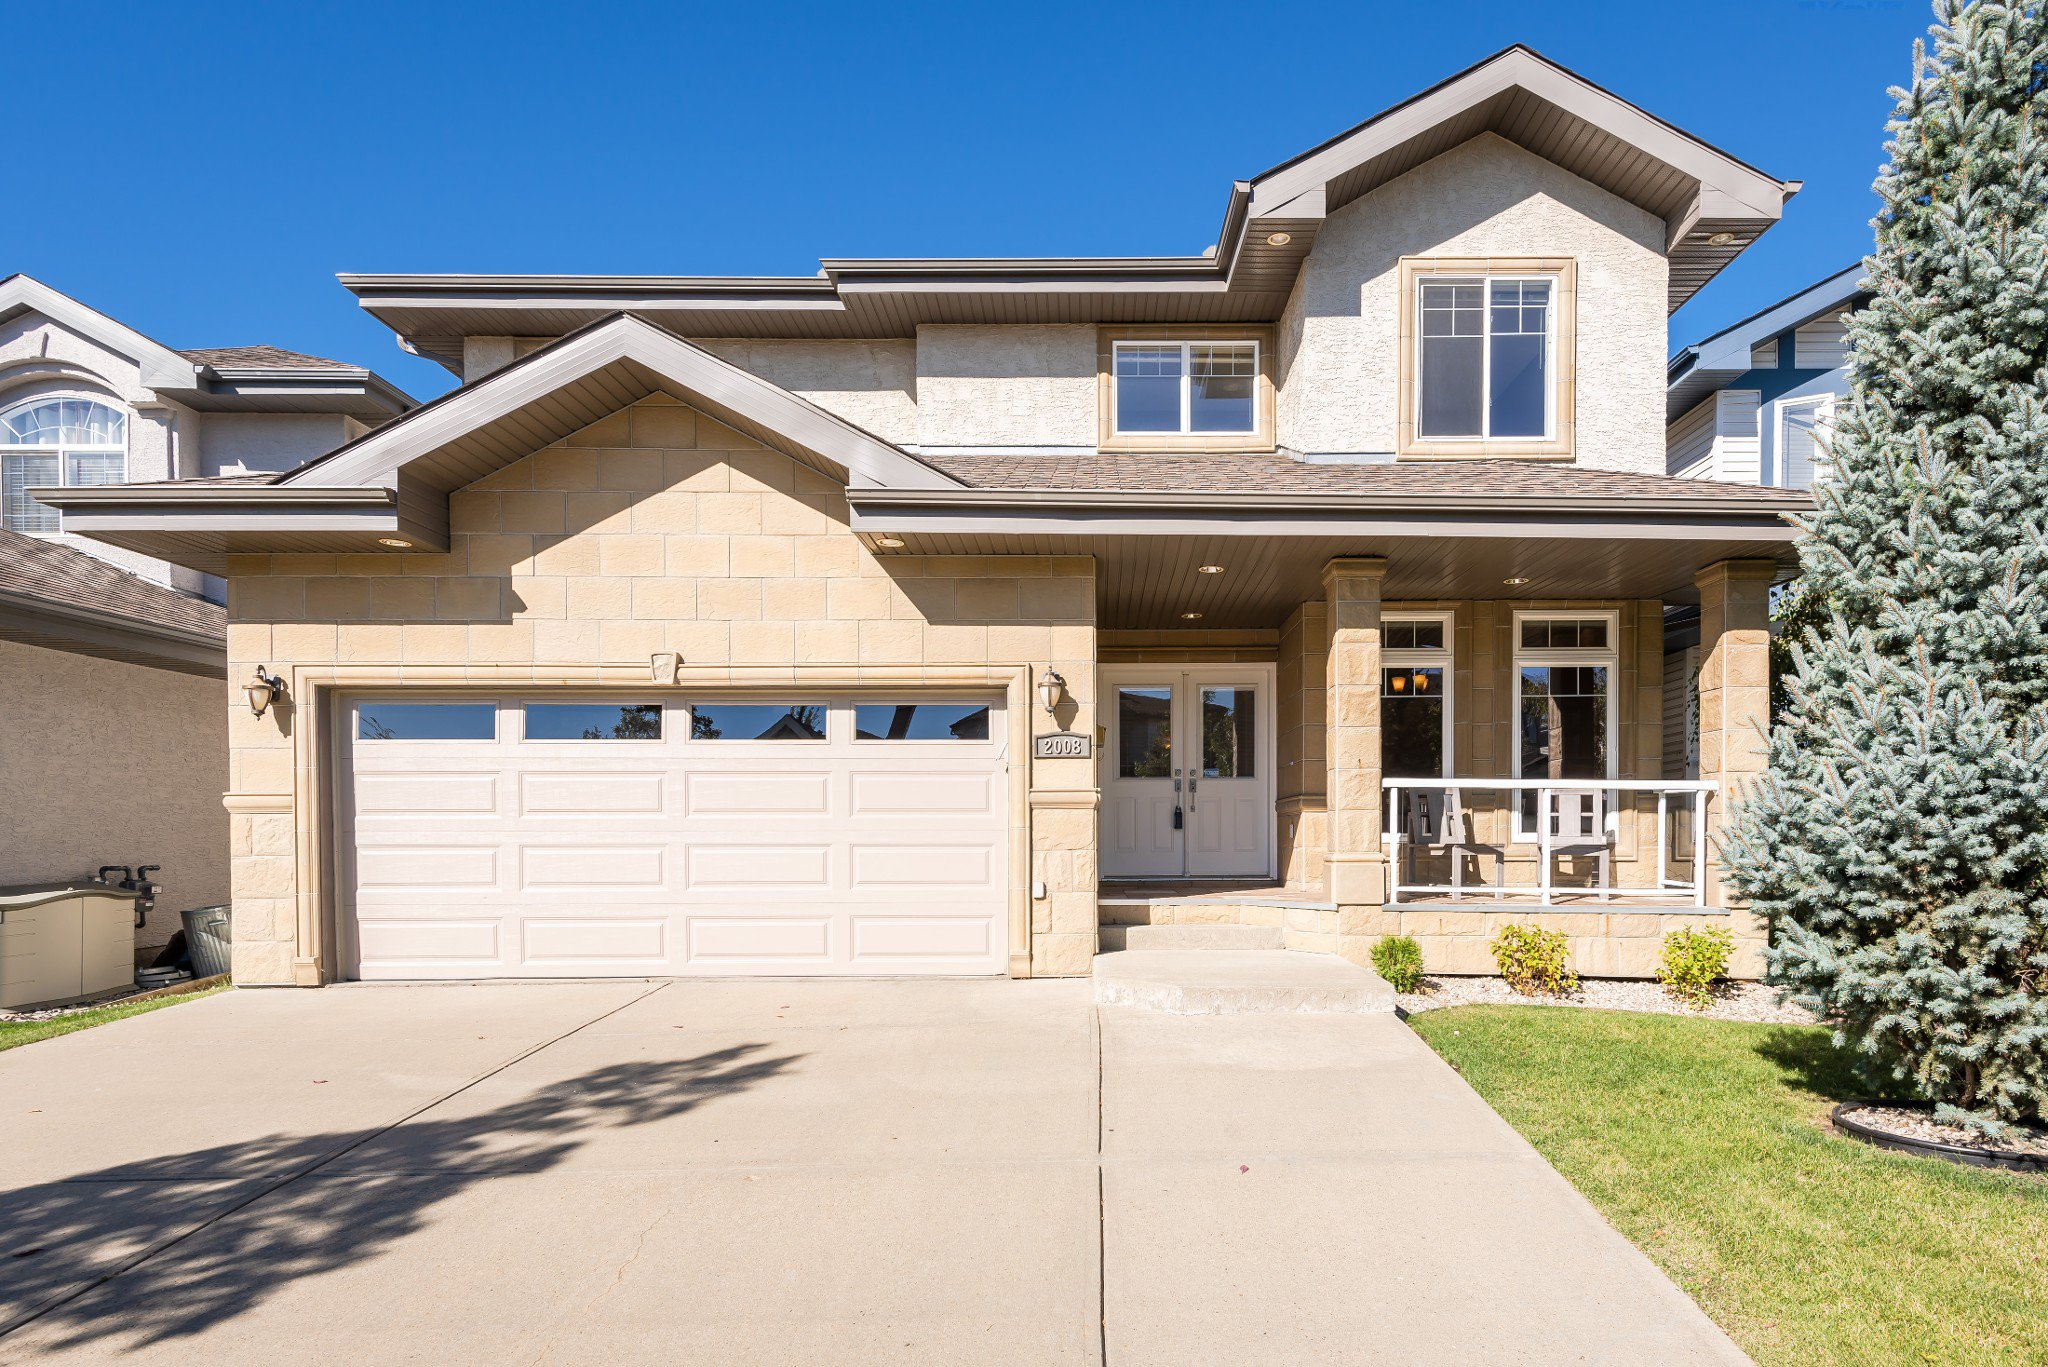 Main Photo: 2008 Hilliard Place in Edmonton: House for sale : MLS®# E4211906